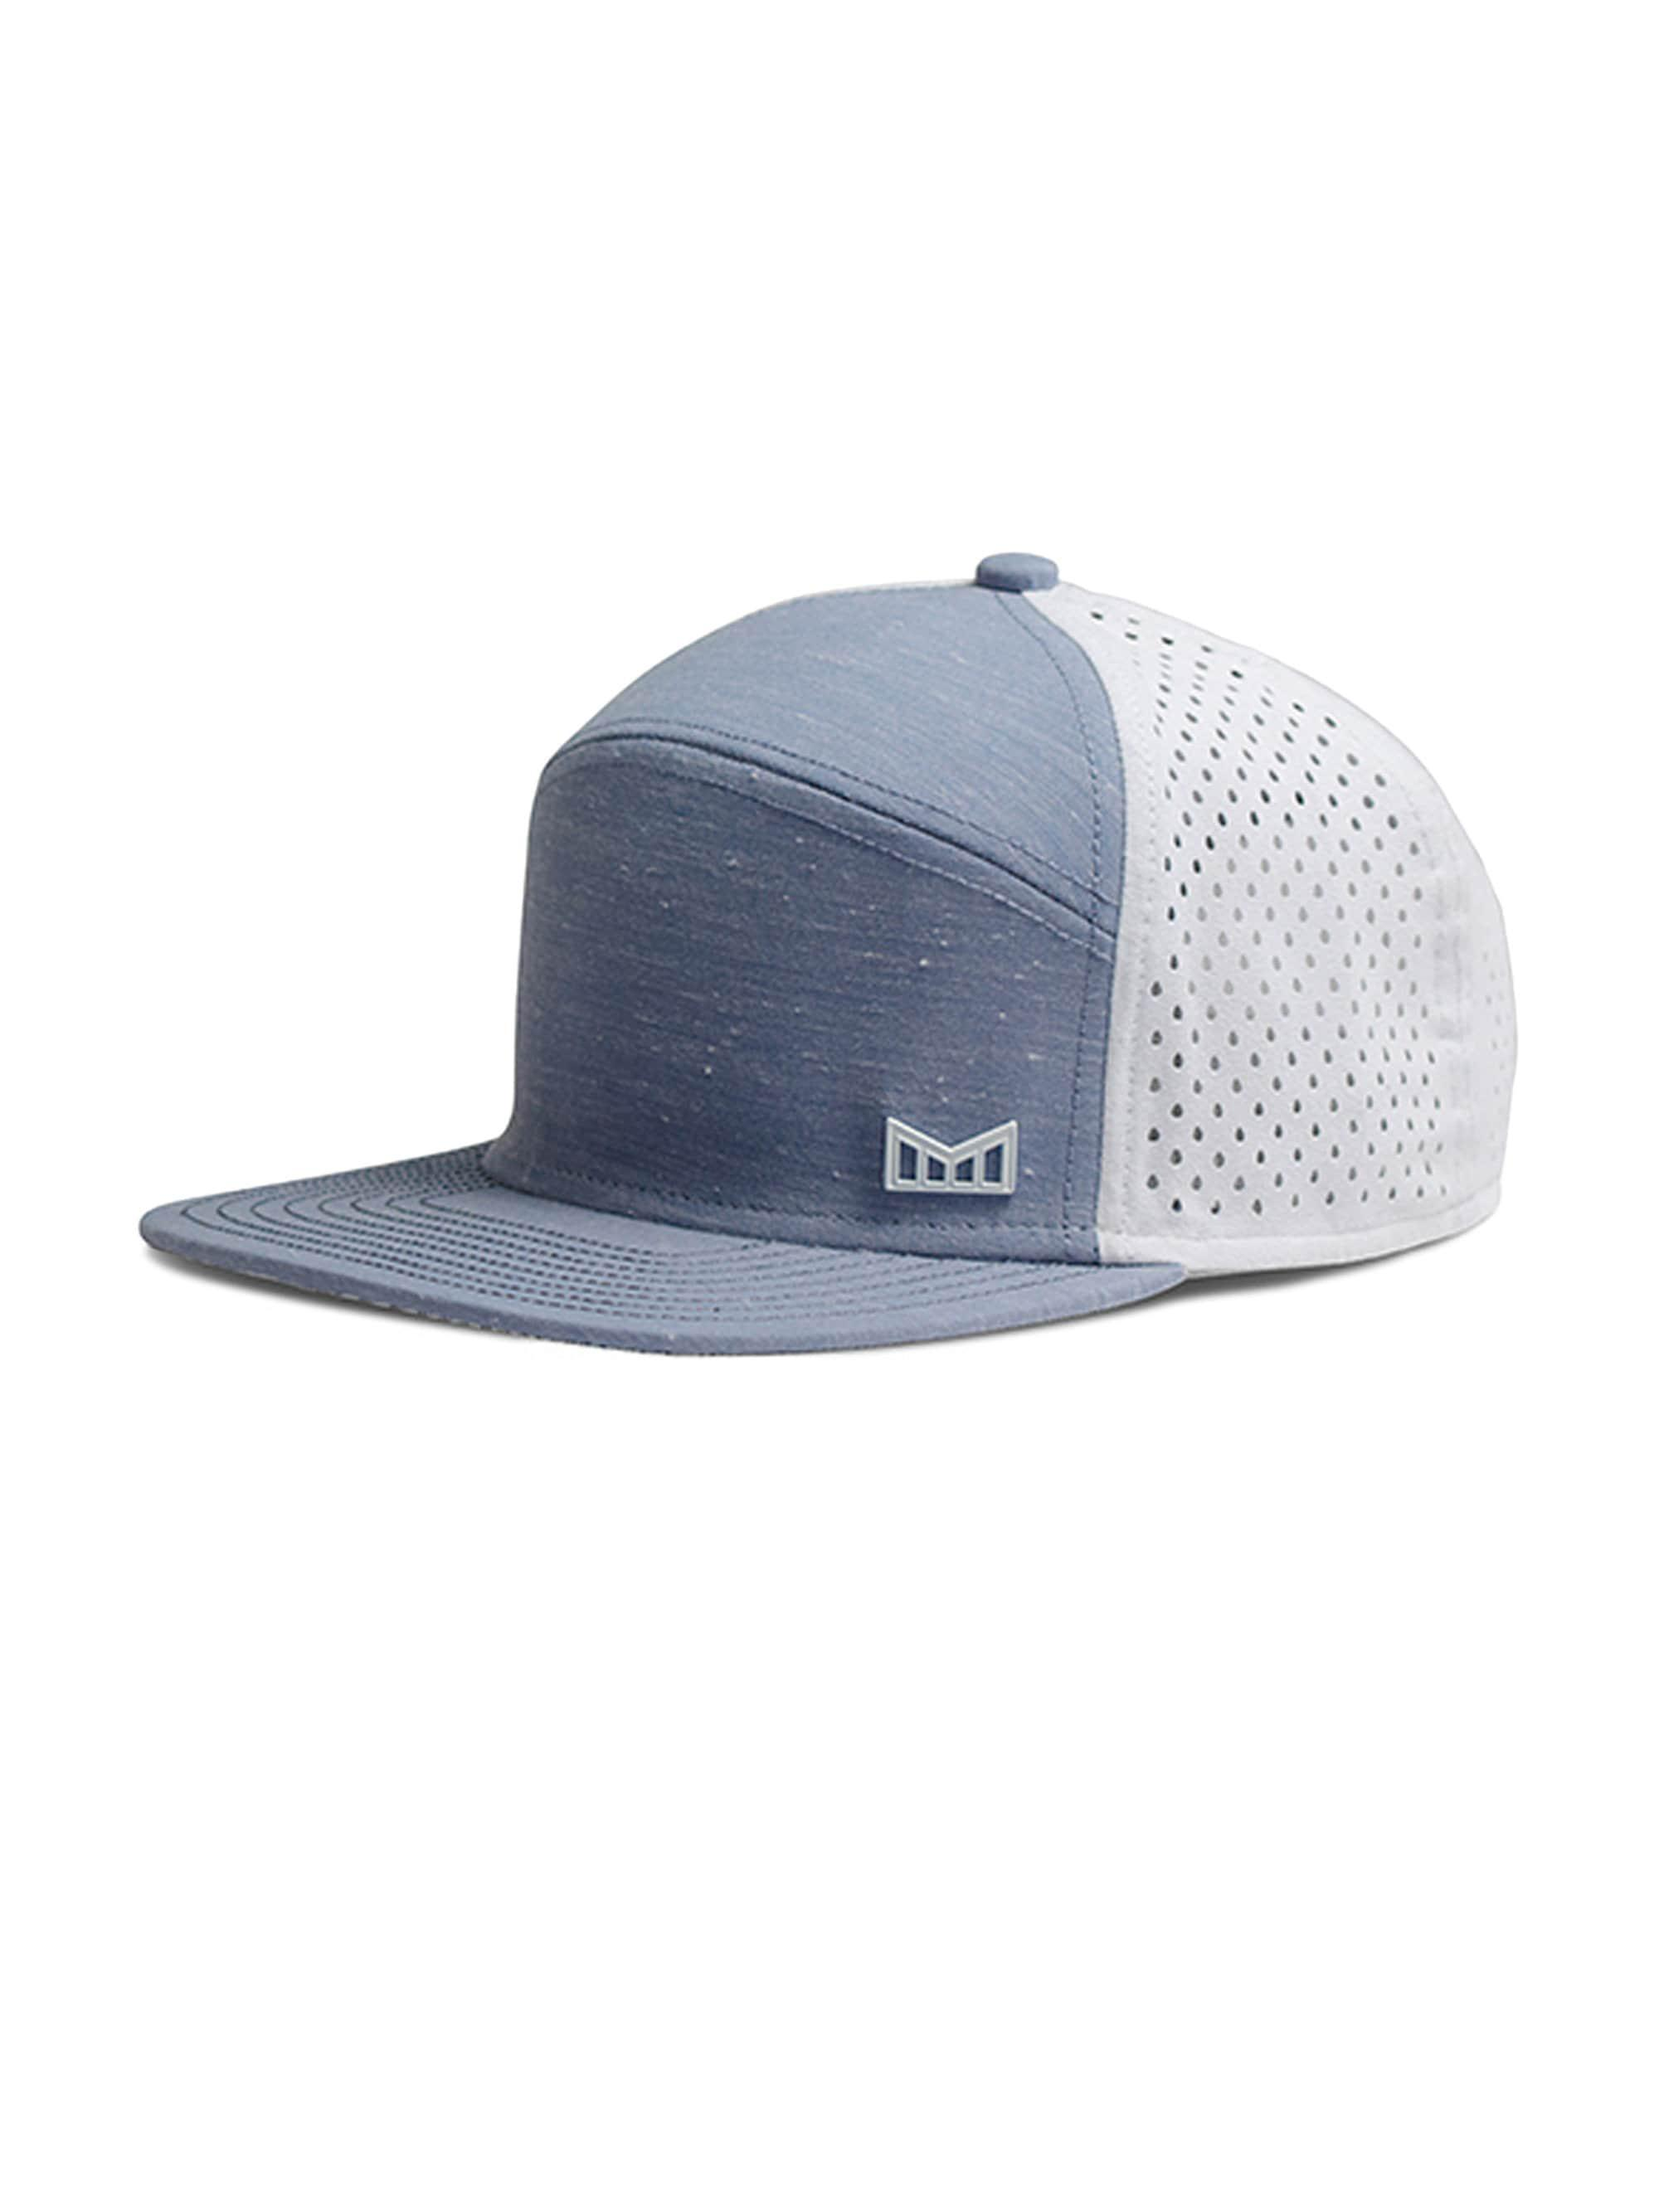 reputable site 717eb a4fbe ... purchase lyst melin trenches baseball hat in blue for men f33e0 7744a